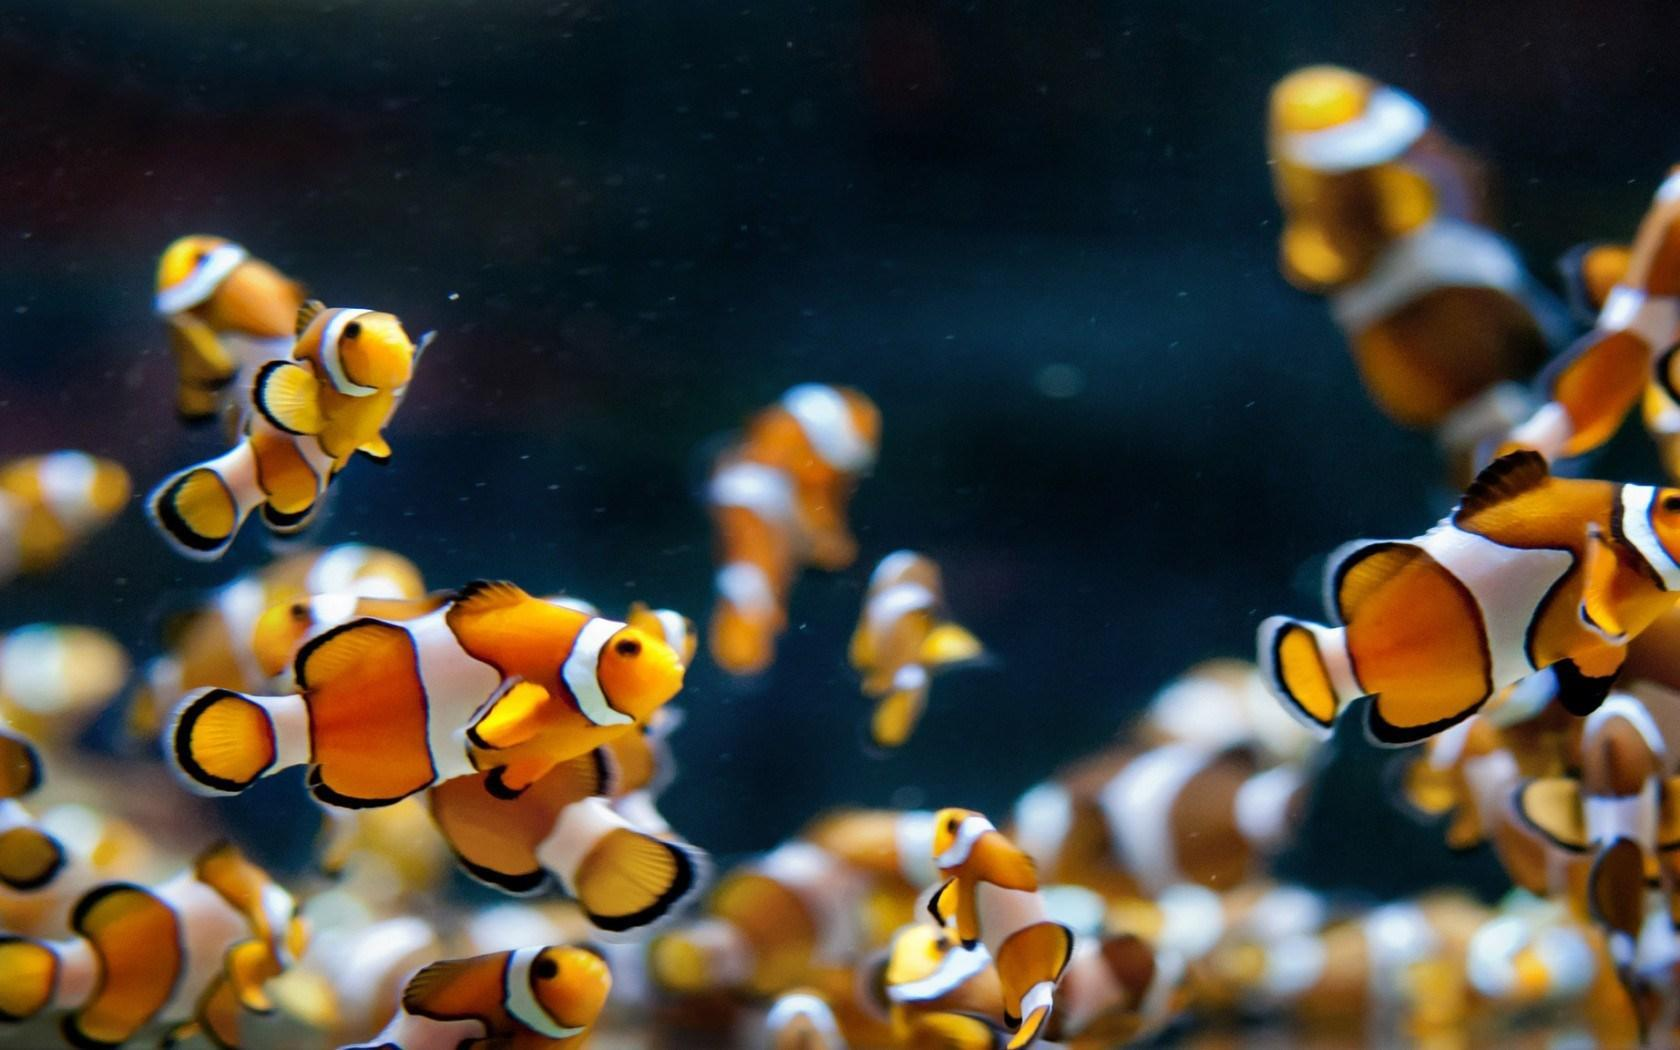 Hd Wallpapers Fish Aquarium Dowload